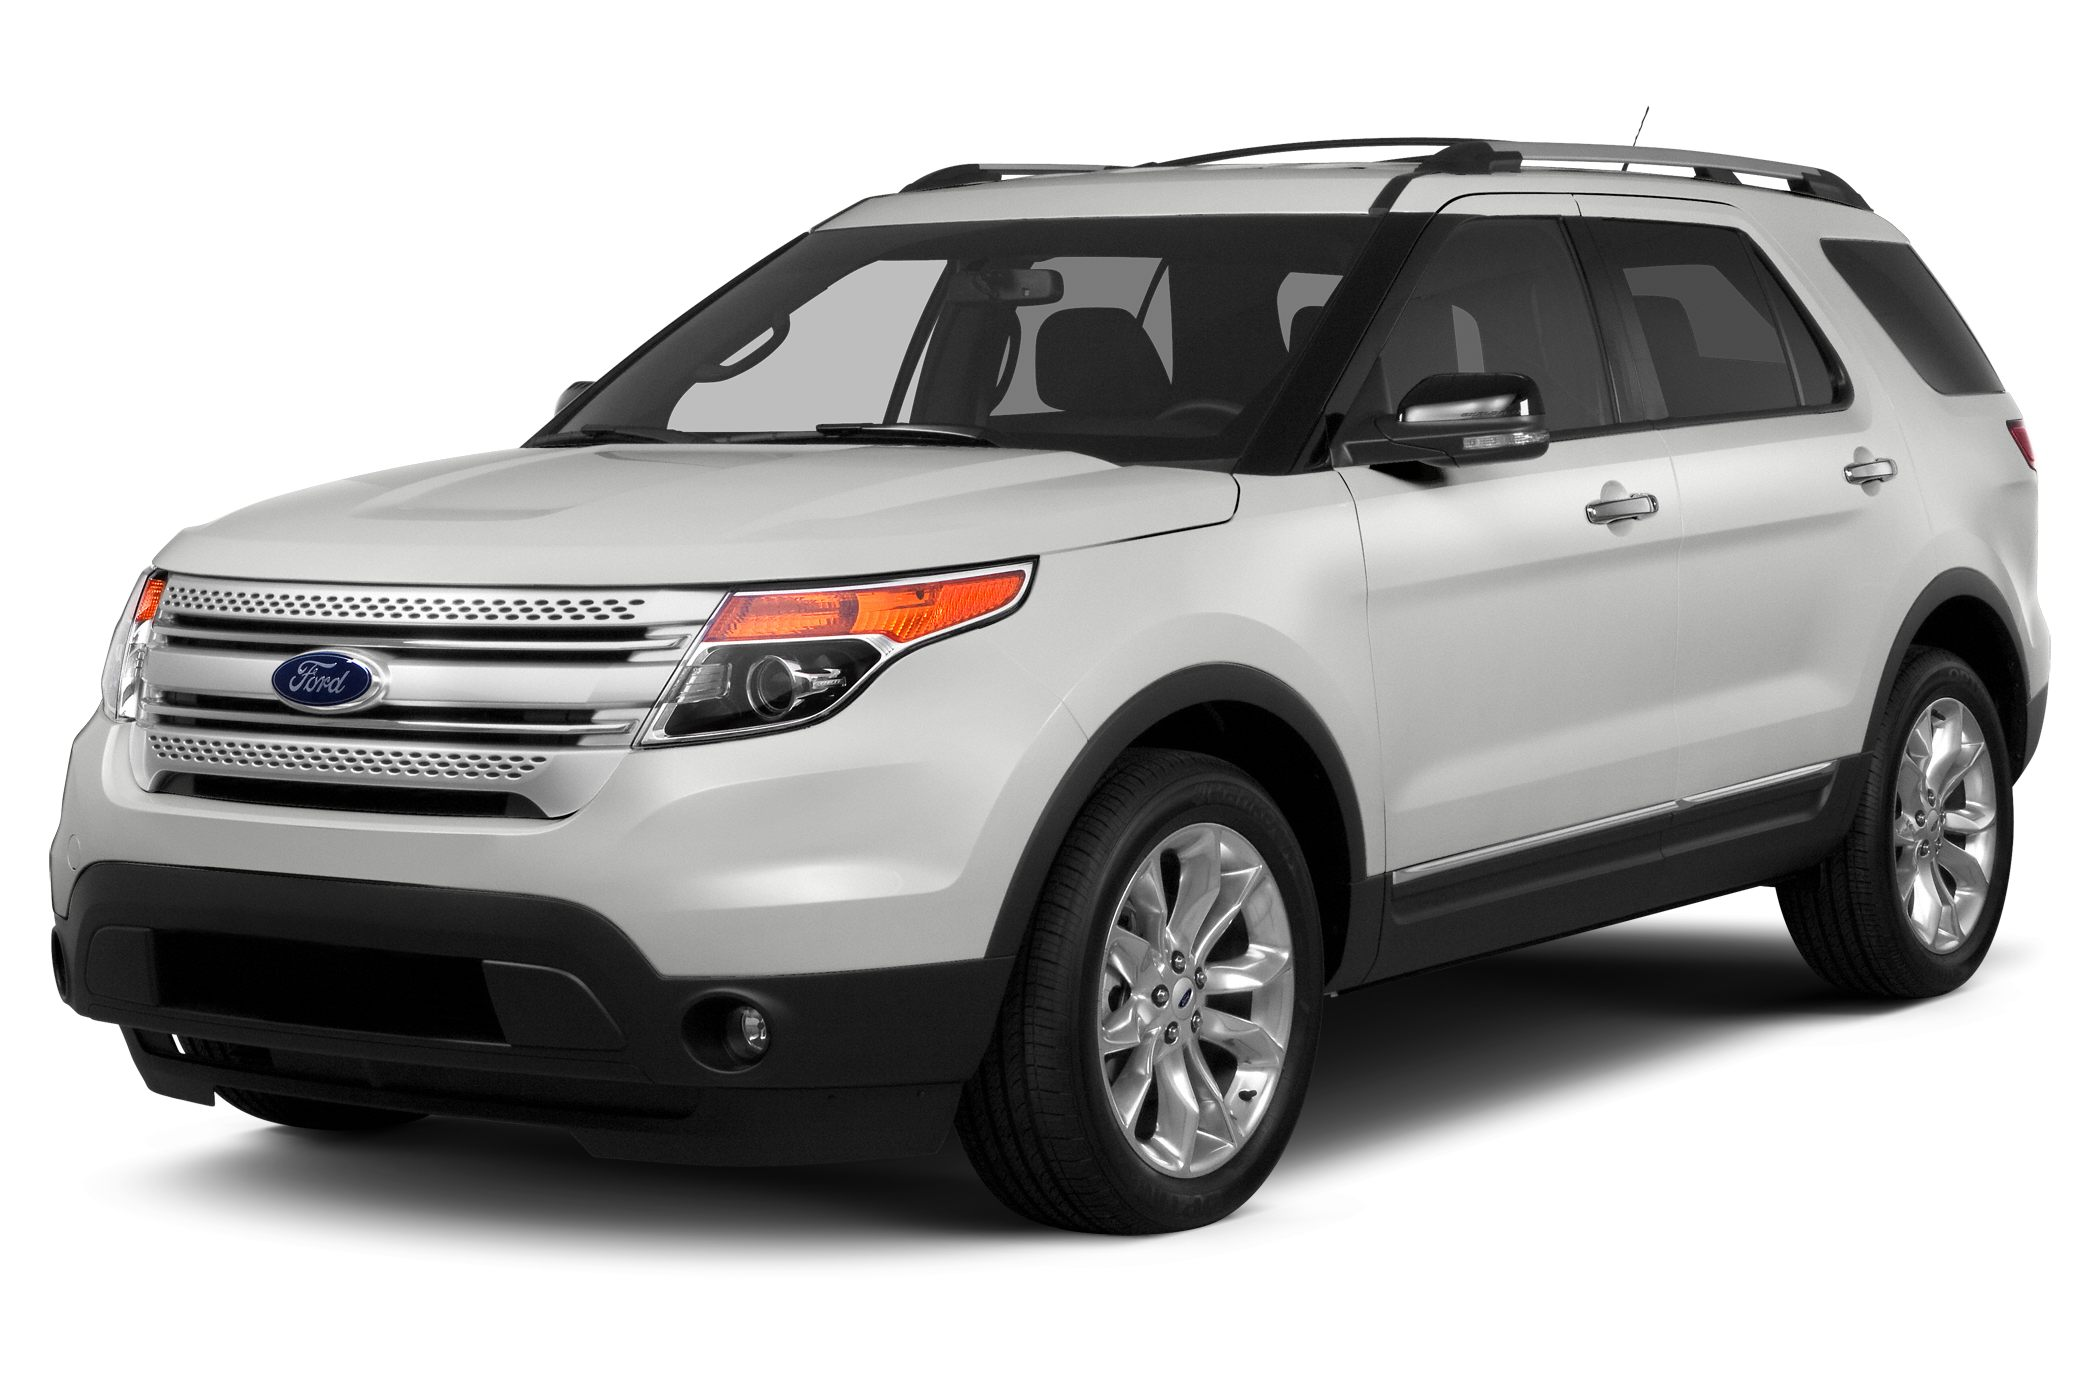 2015 Ford Explorer XLT SUV for sale in Bethlehem for $43,040 with 12 miles